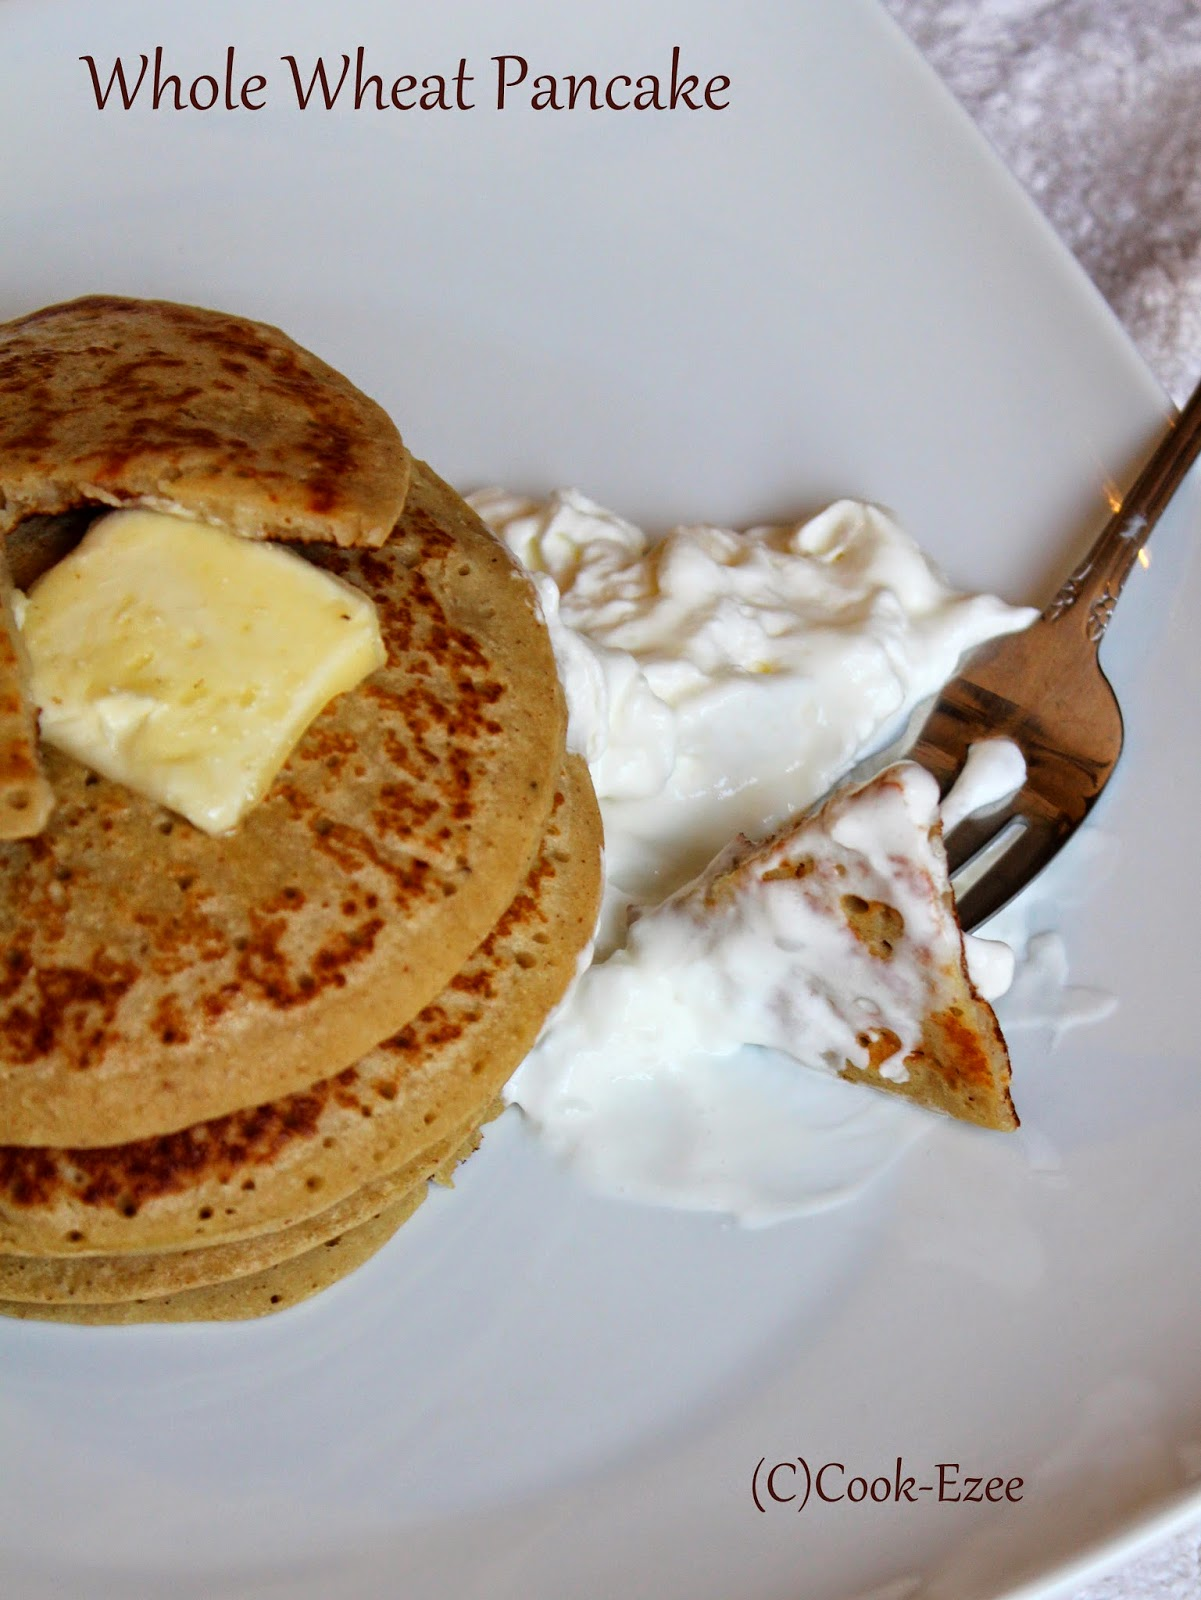 COOK-EZEE: Whole Wheat Banana Pancakes ~ Soft and Fluffy